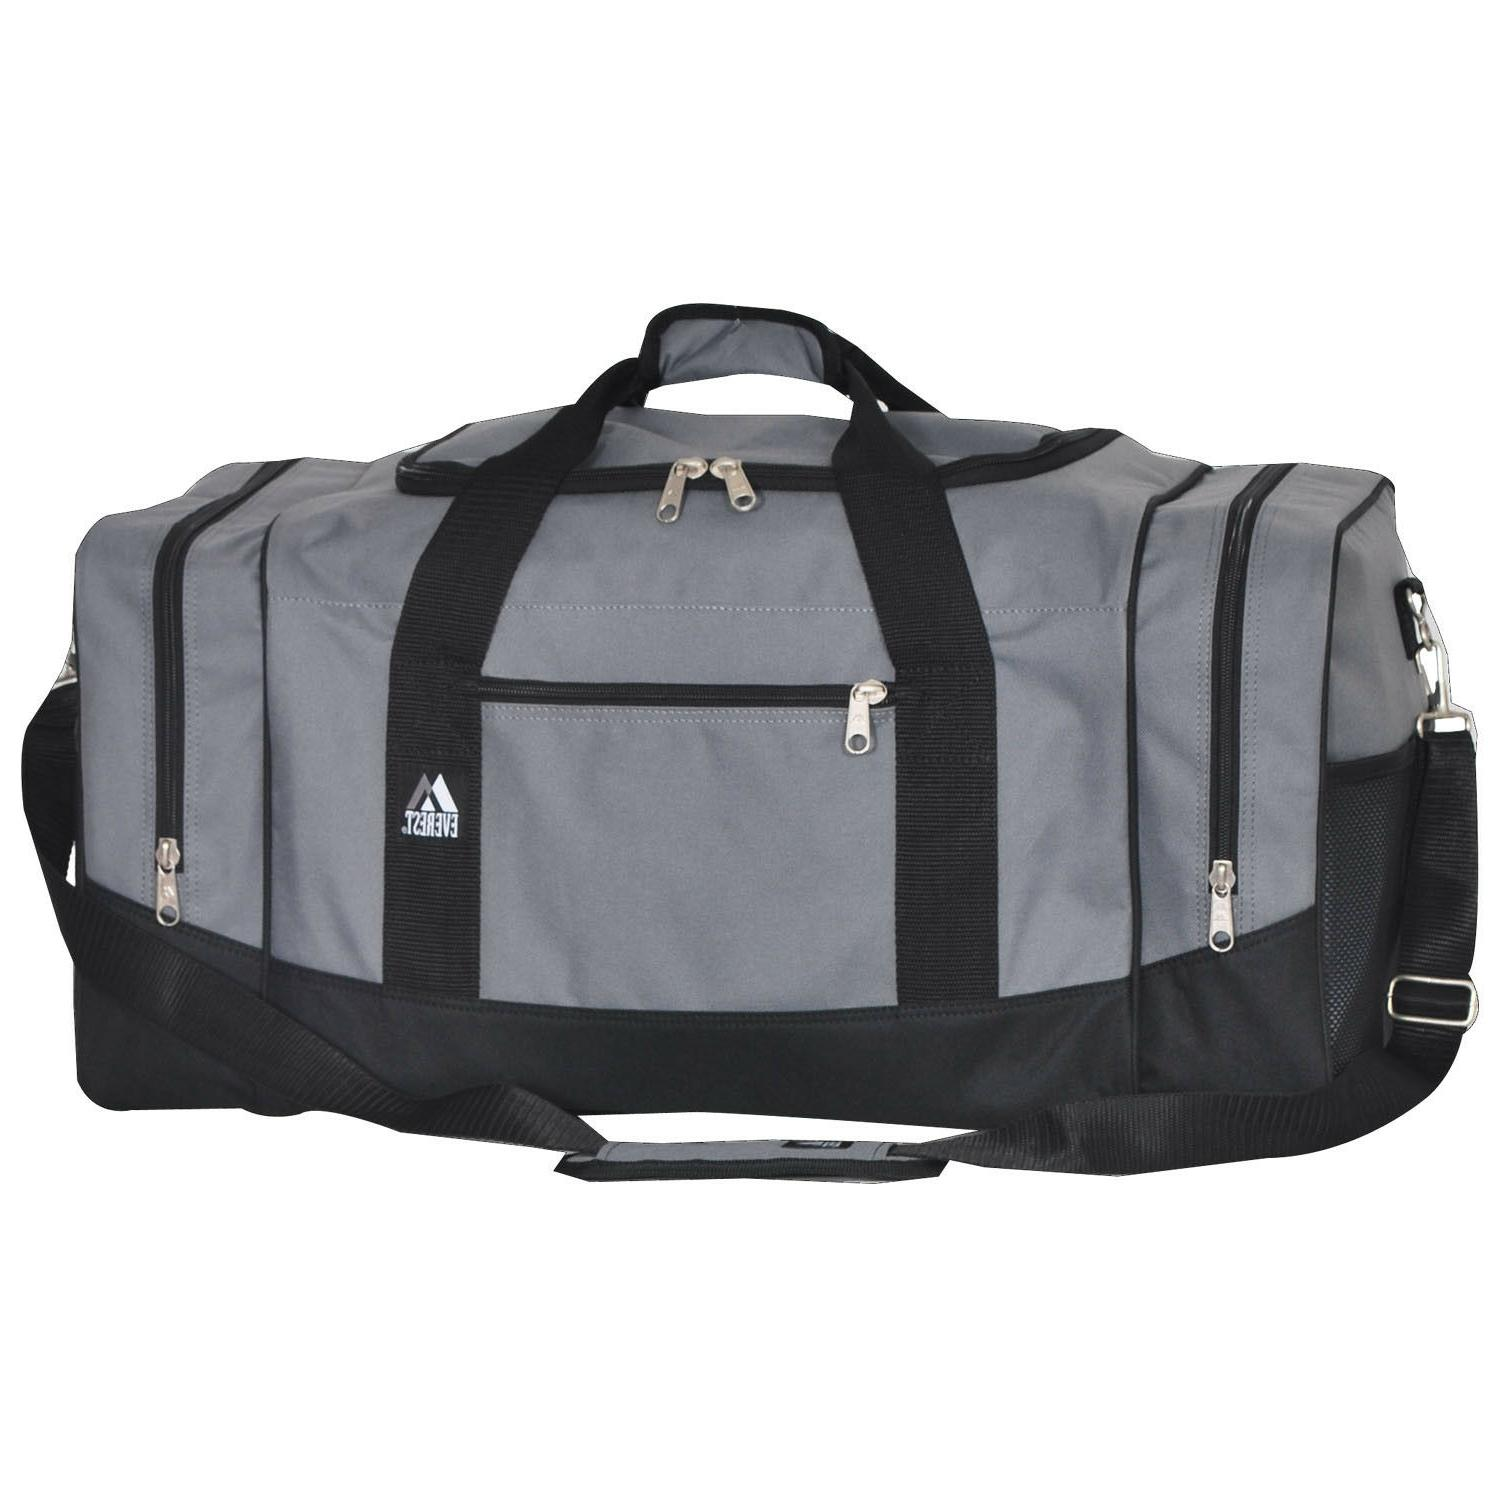 duffel bag spacious sporty zippered clam shell